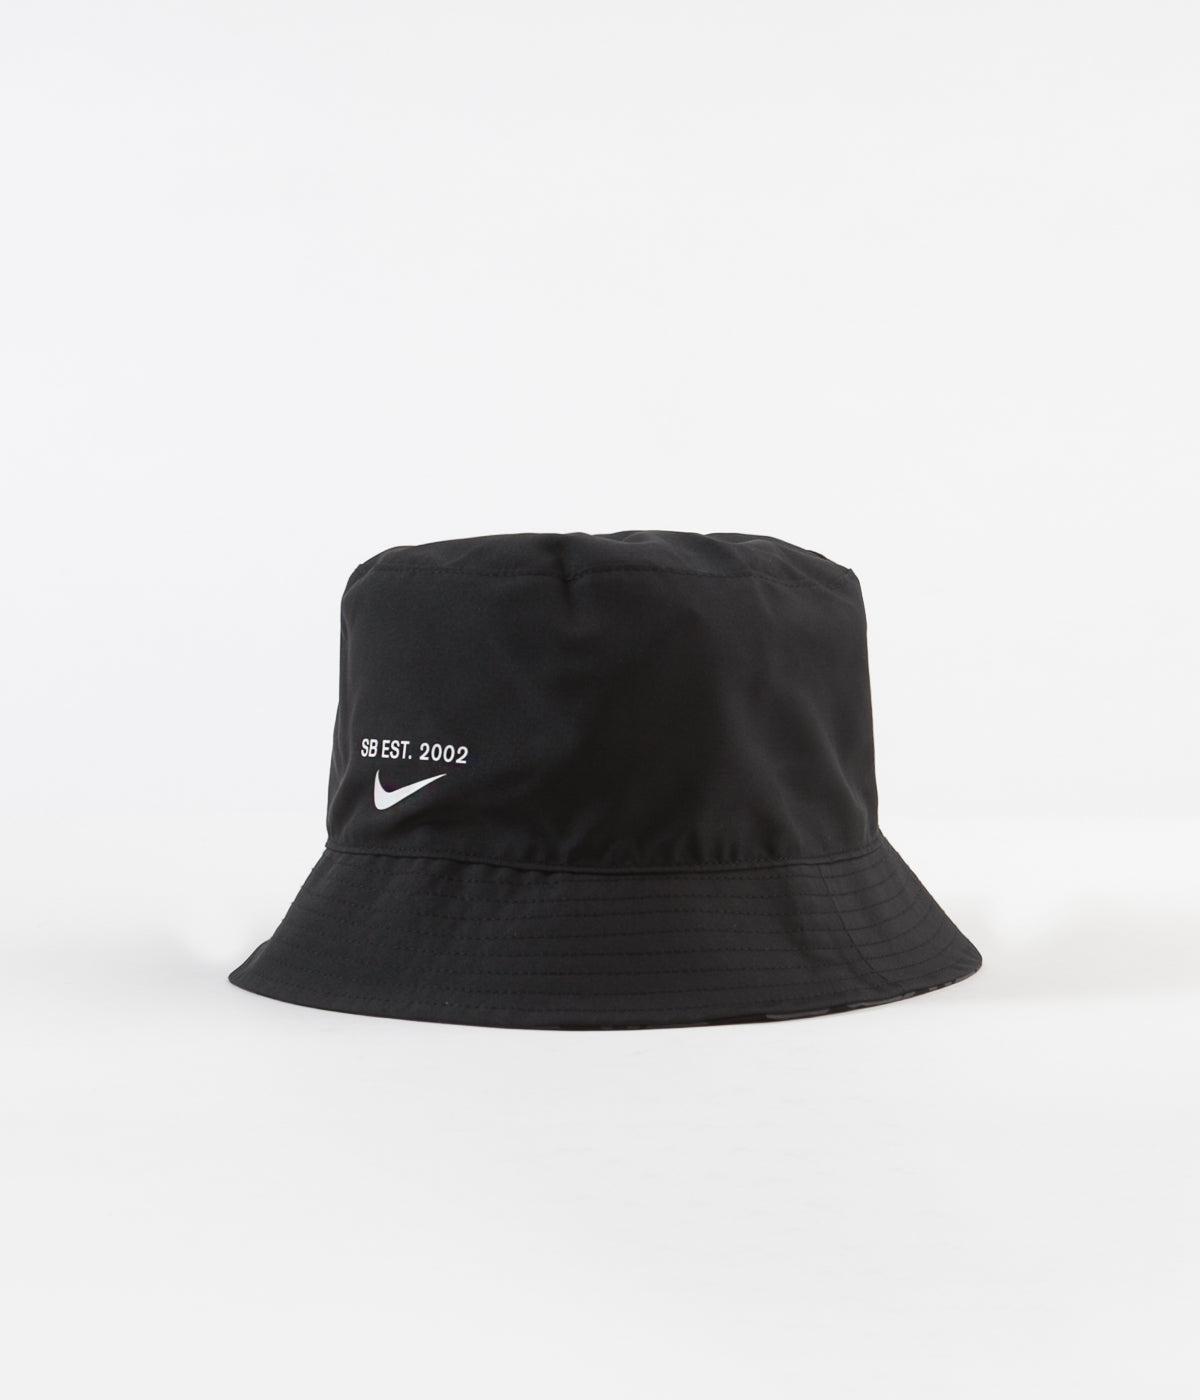 Nike SB Big Leaf Print Bucket Hat - Black